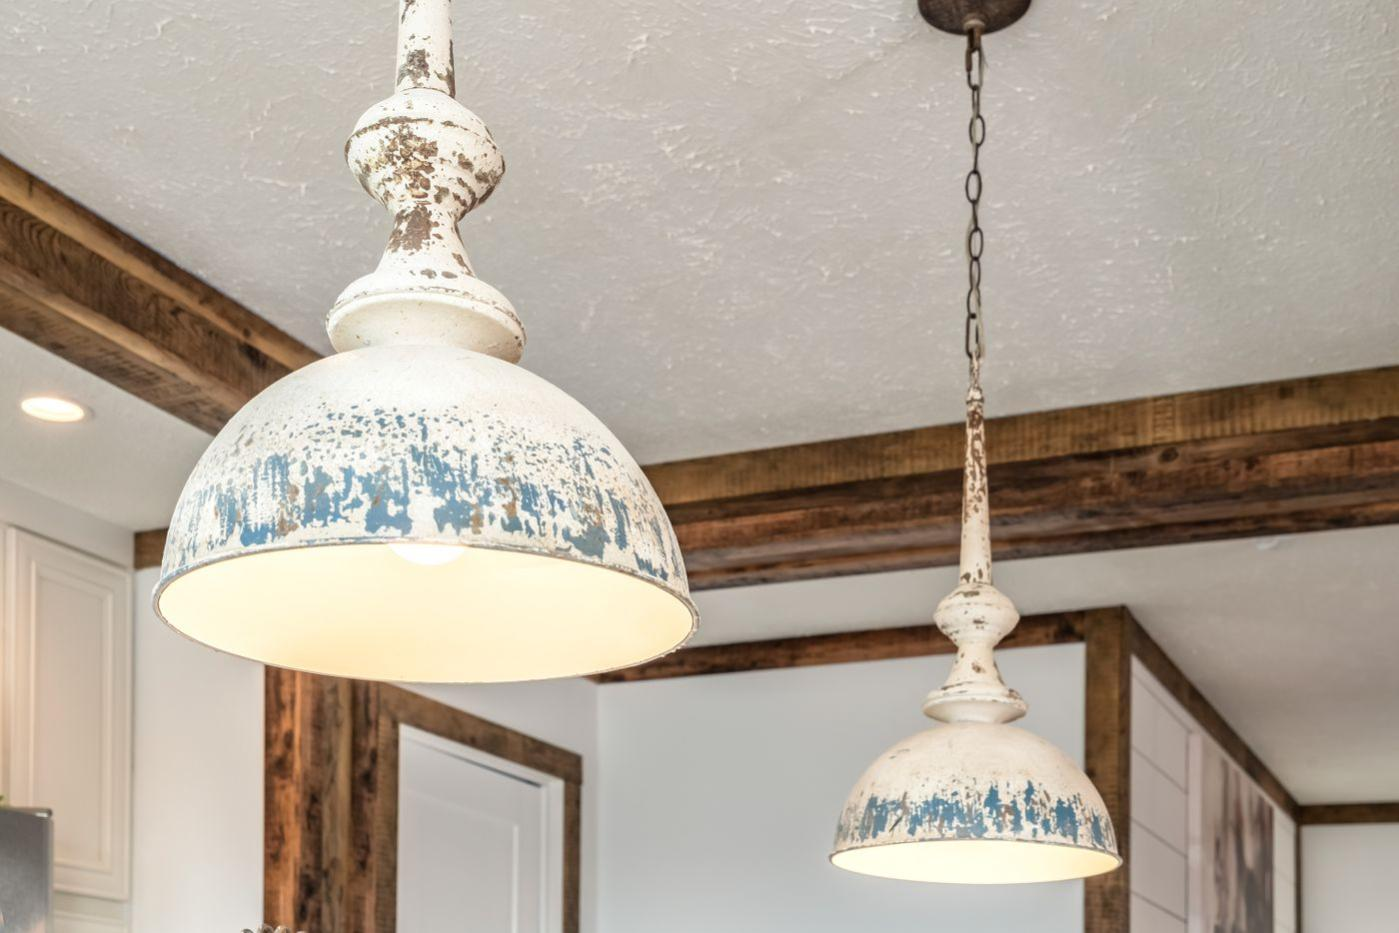 The Avalyn Ceiling Lights